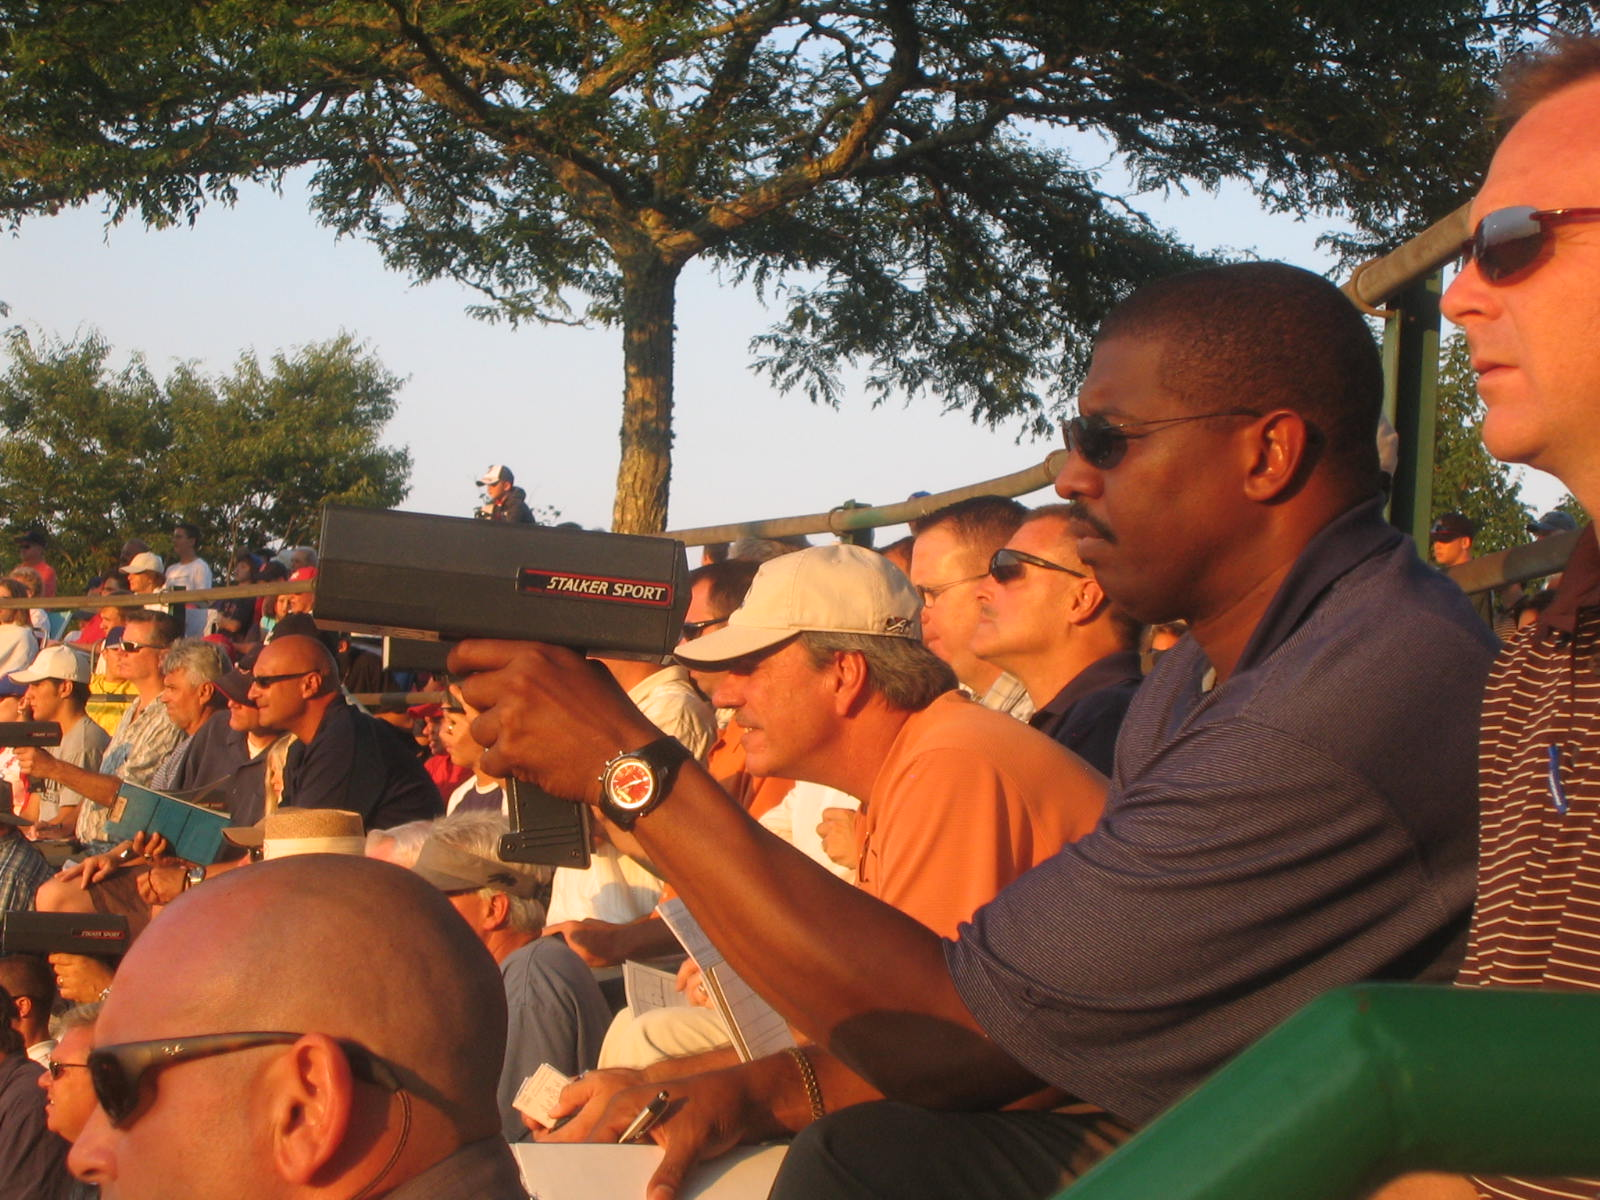 The scouts were out in force last night --using their guns in search of young guns.